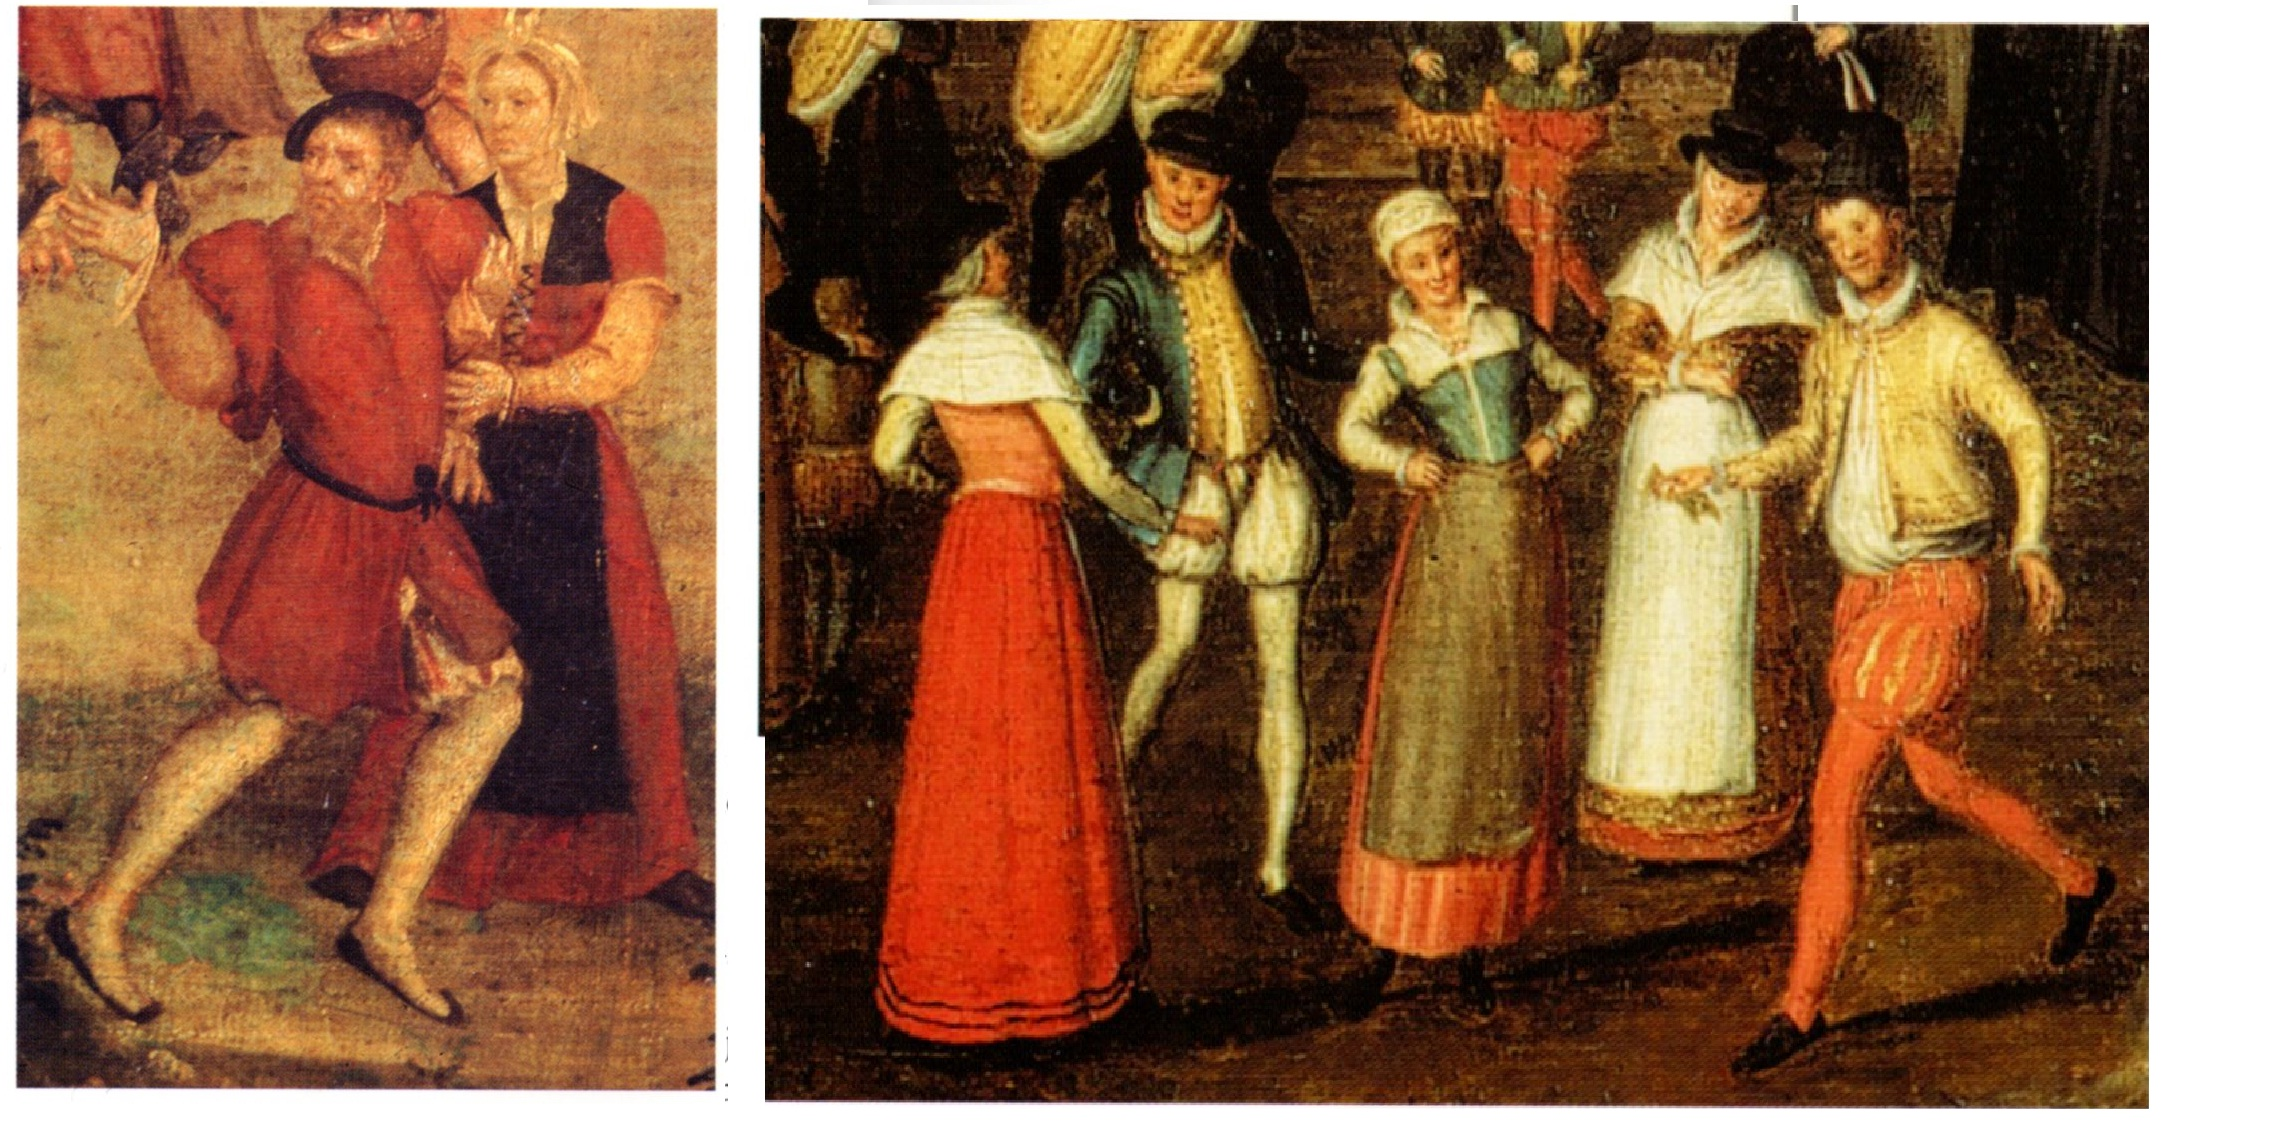 1550–1600 in Western European fashion